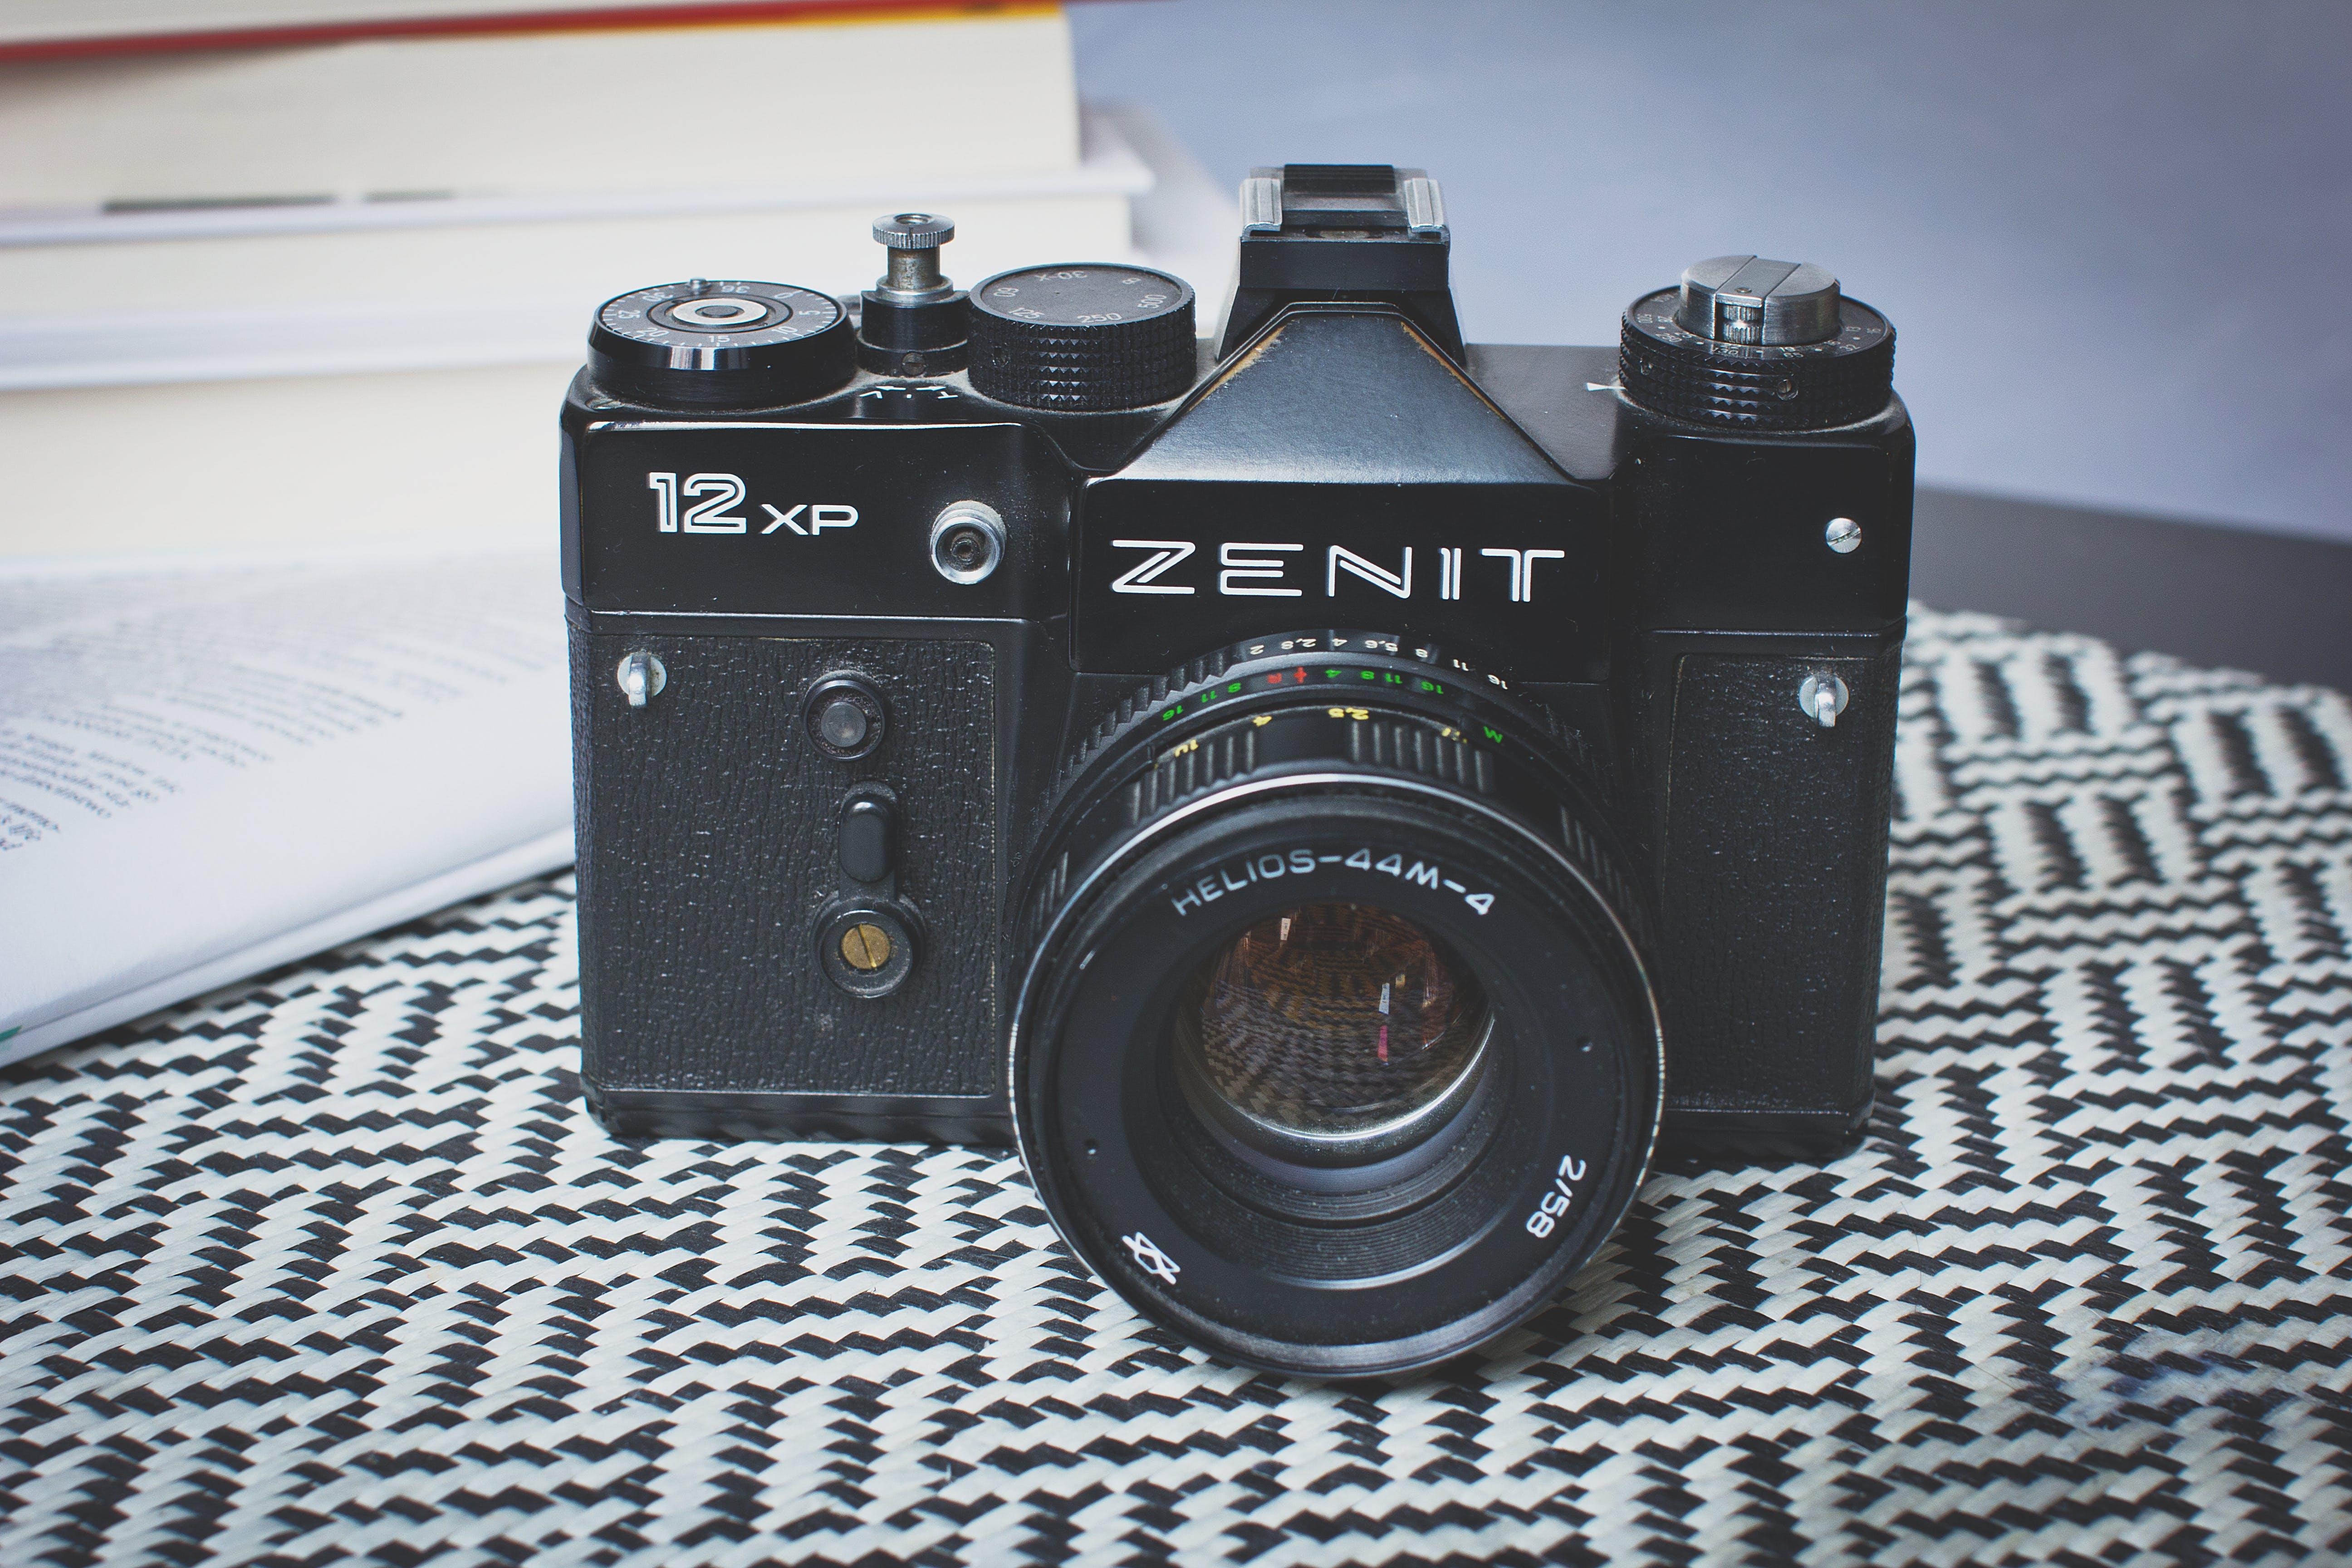 Black Zenit Dslr Camera on Top of Table